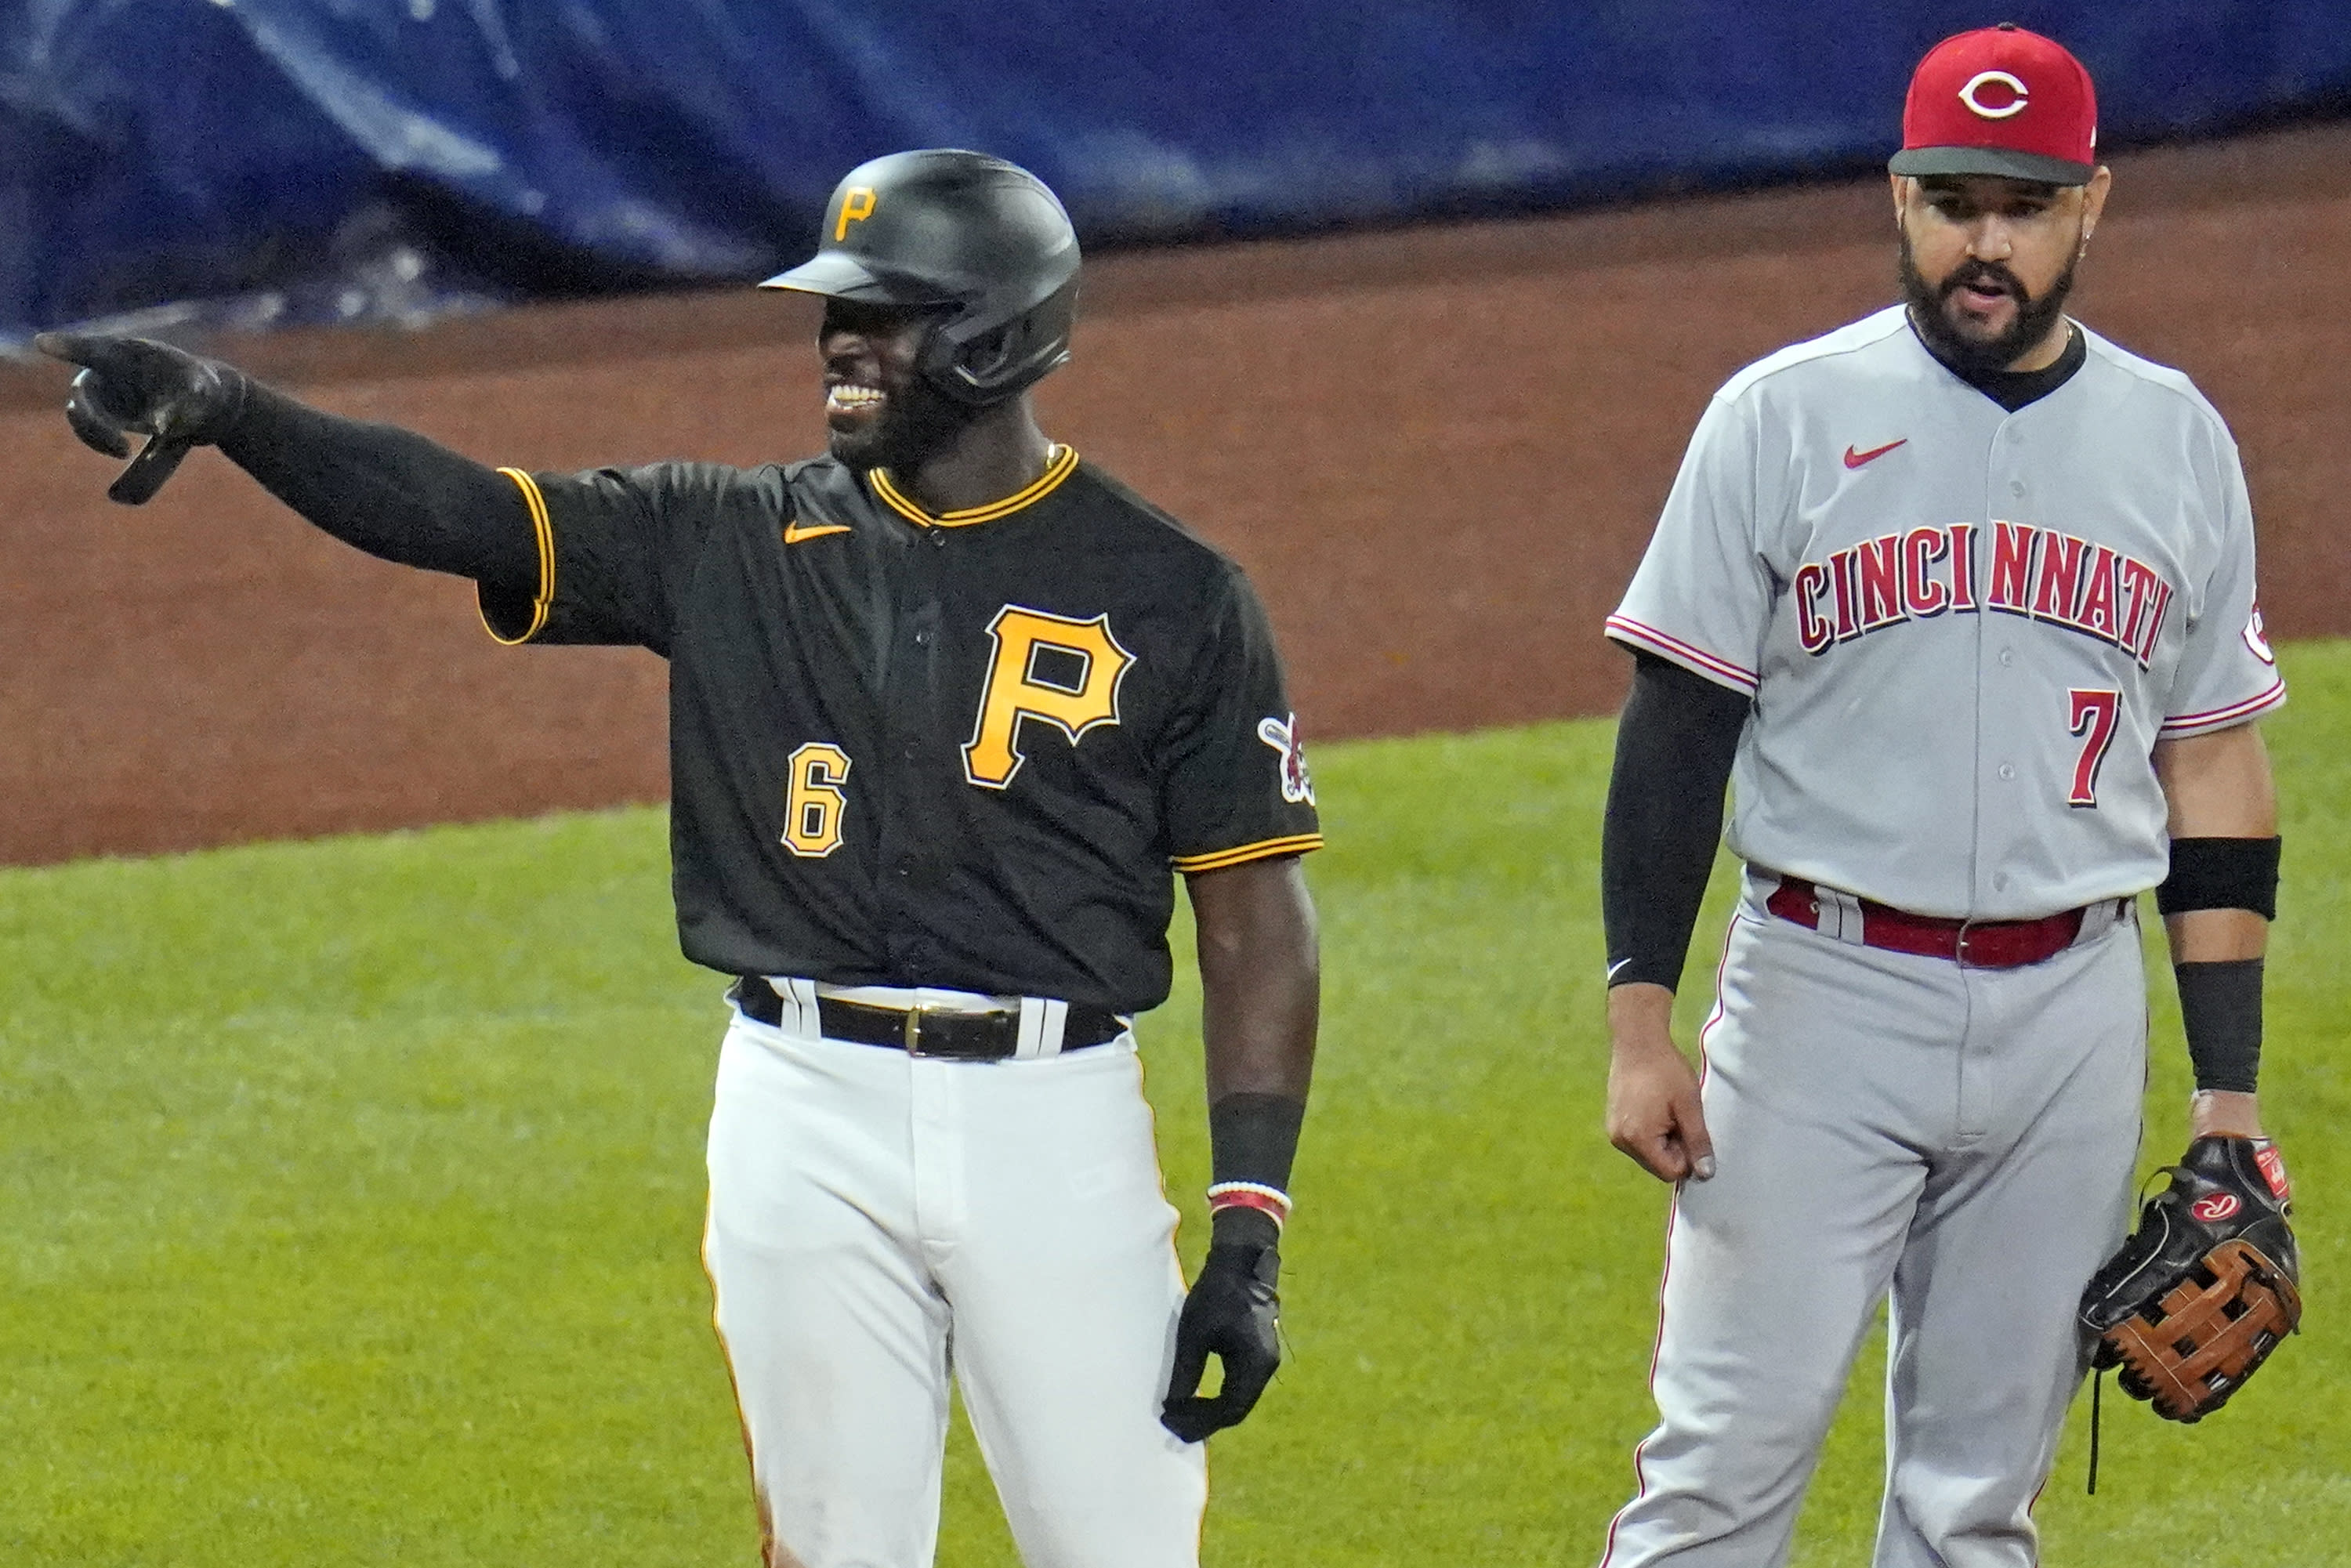 CORRECTS THAT ALFORD DROVE IN TWO RUNS, INSTEAD OF ONE - Pittsburgh Pirates' Anthony Alford (6) celebrates as he stands on third base in front of Cincinnati Reds third baseman Eugenio Suarez (7) after driving in two runs with a triple off starting pitcher Trevor Bauer during the fourth inning of the second baseball game of a doubleheader in Pittsburgh, Friday, Sept. 4, 2020. (AP Photo/Gene J. Puskar)